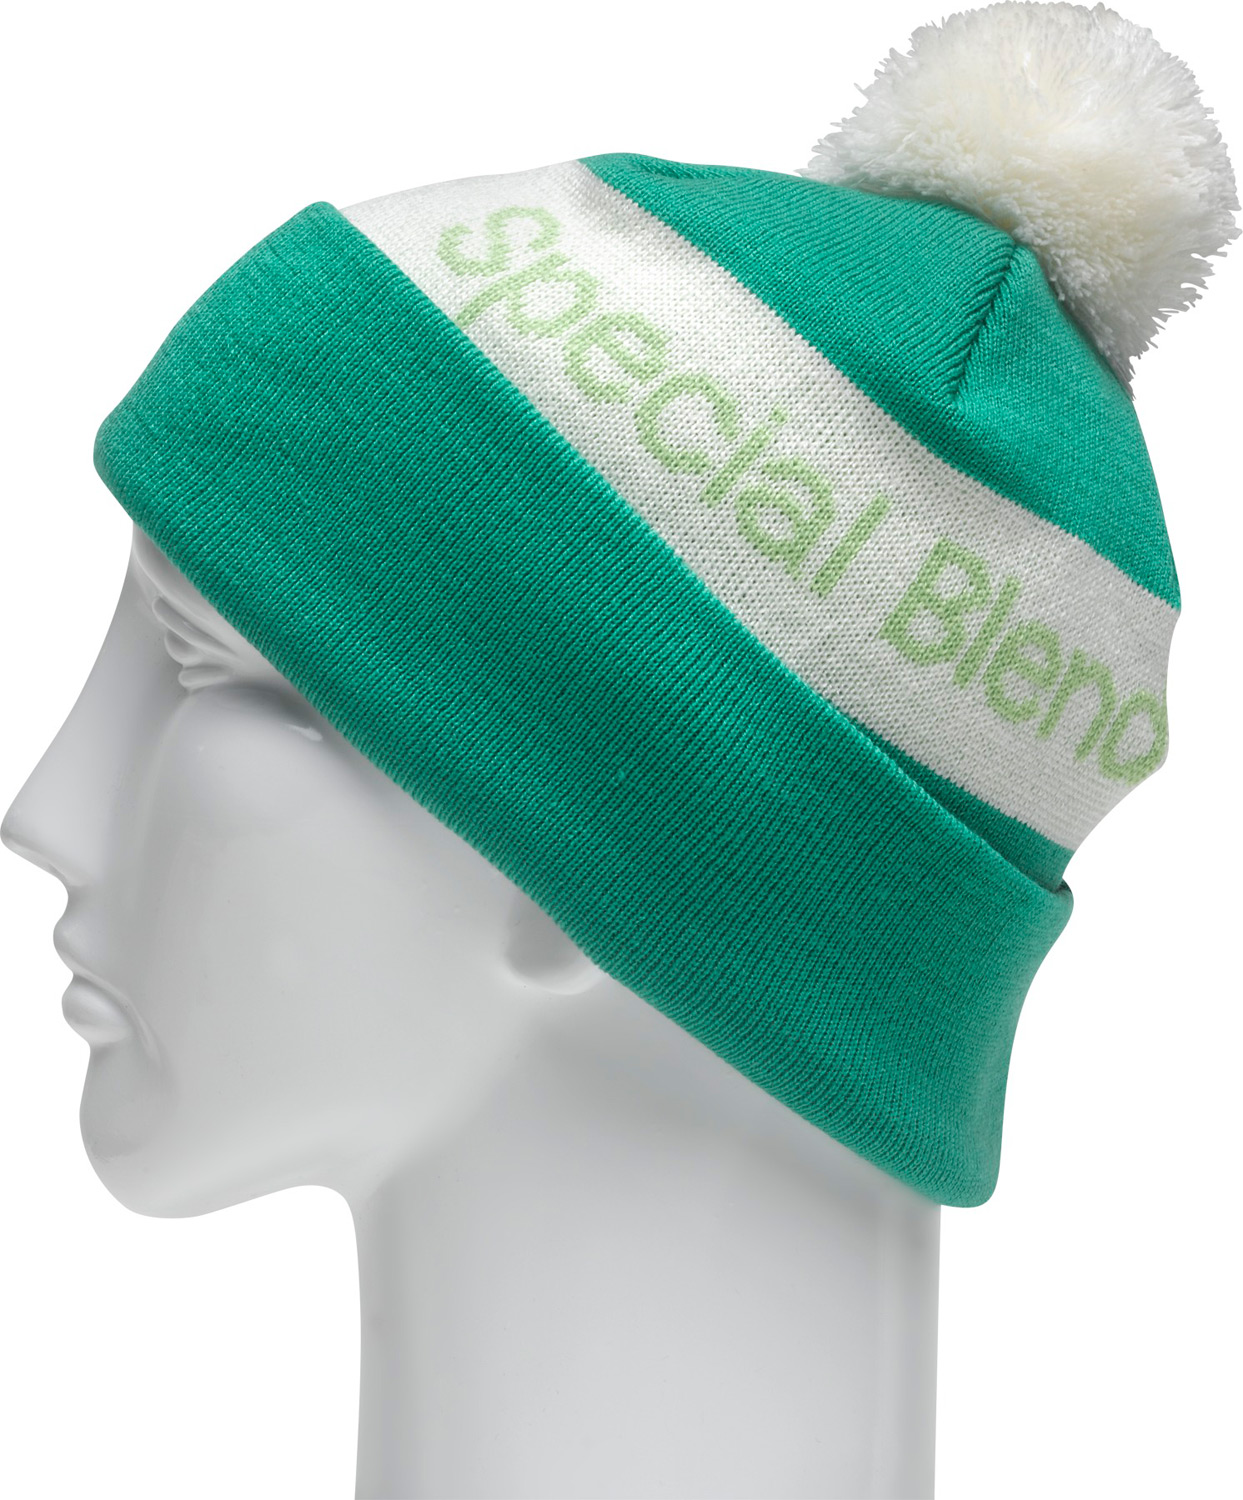 Key Features of the Special Blend Townie Beanie: Machine Knit 100% Acrylic Fold Style Jacquard Stripe With Pom - $17.95